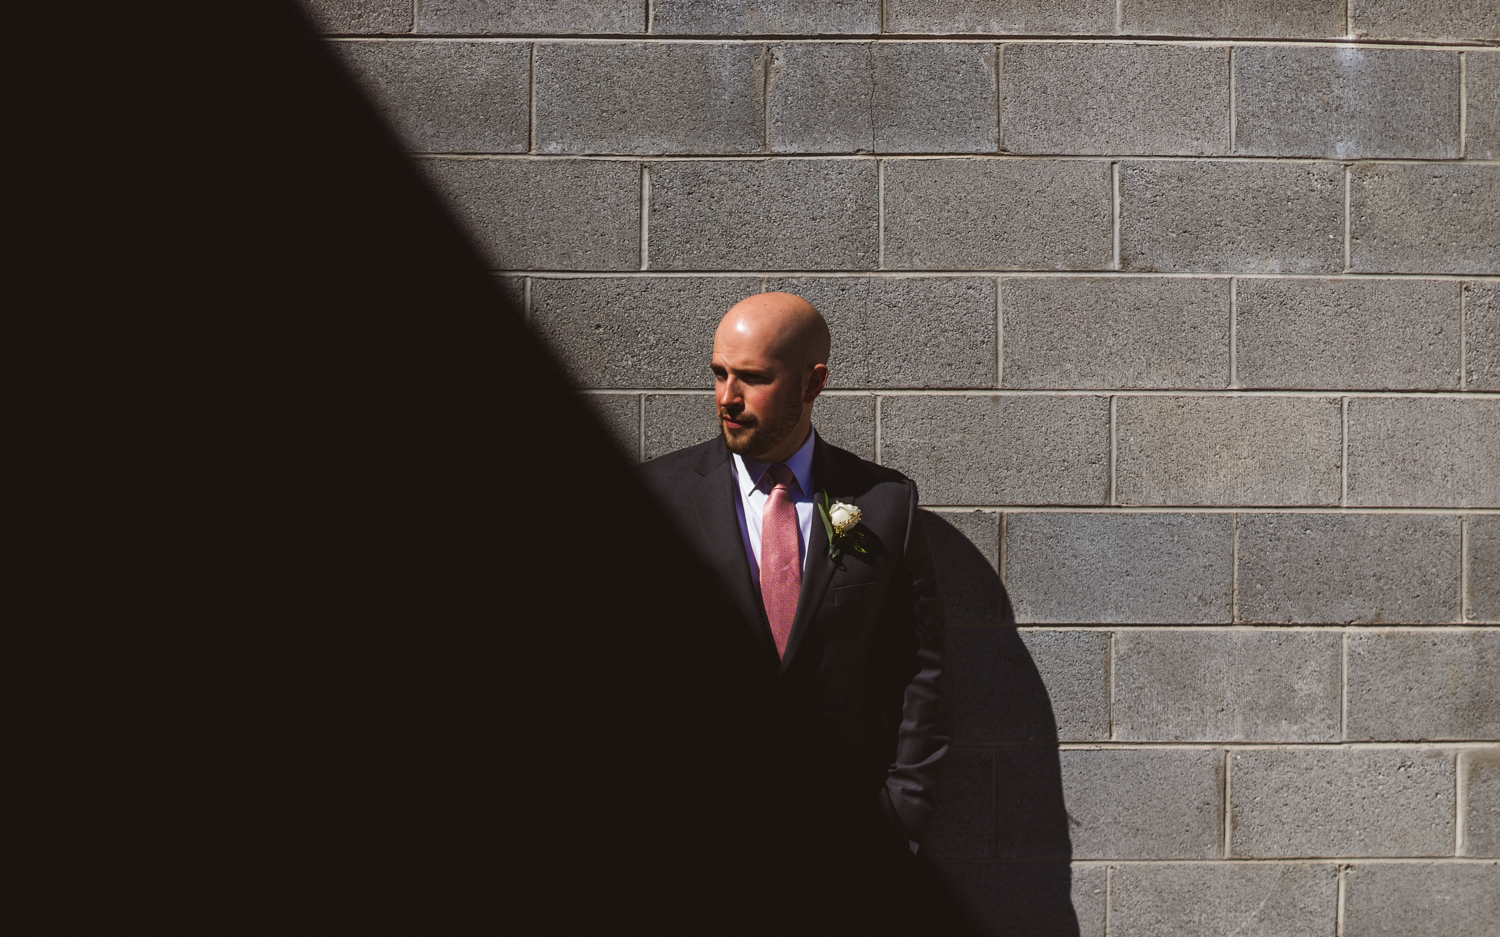 008 - portrait of groom richmond wedding photographer nathan mitchell.jpg